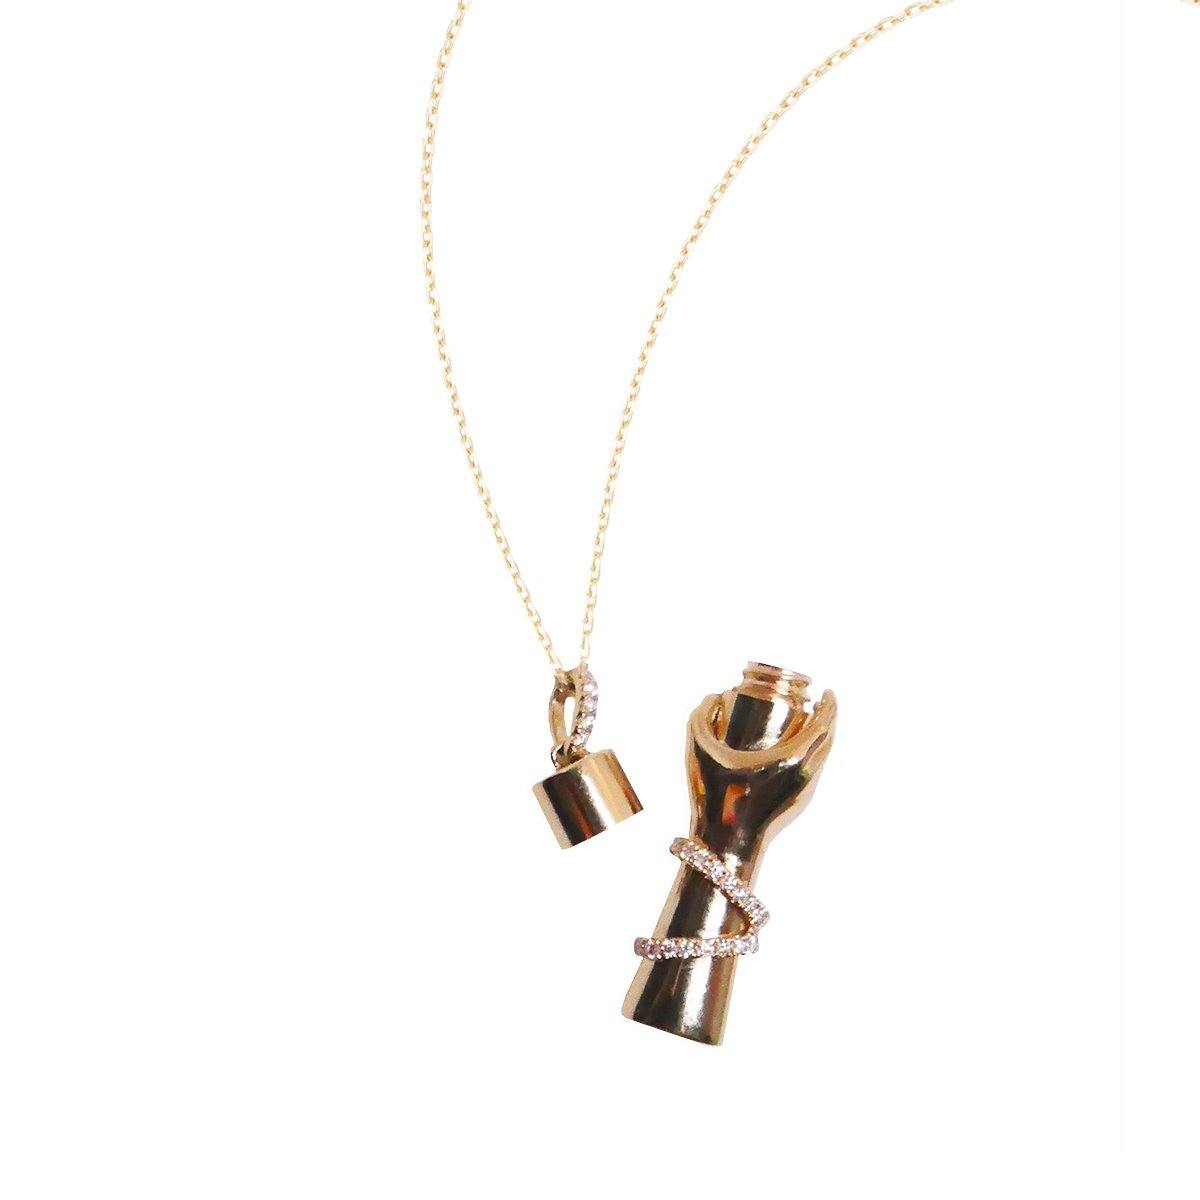 Care Bottle Necklace 8GM | .28CT